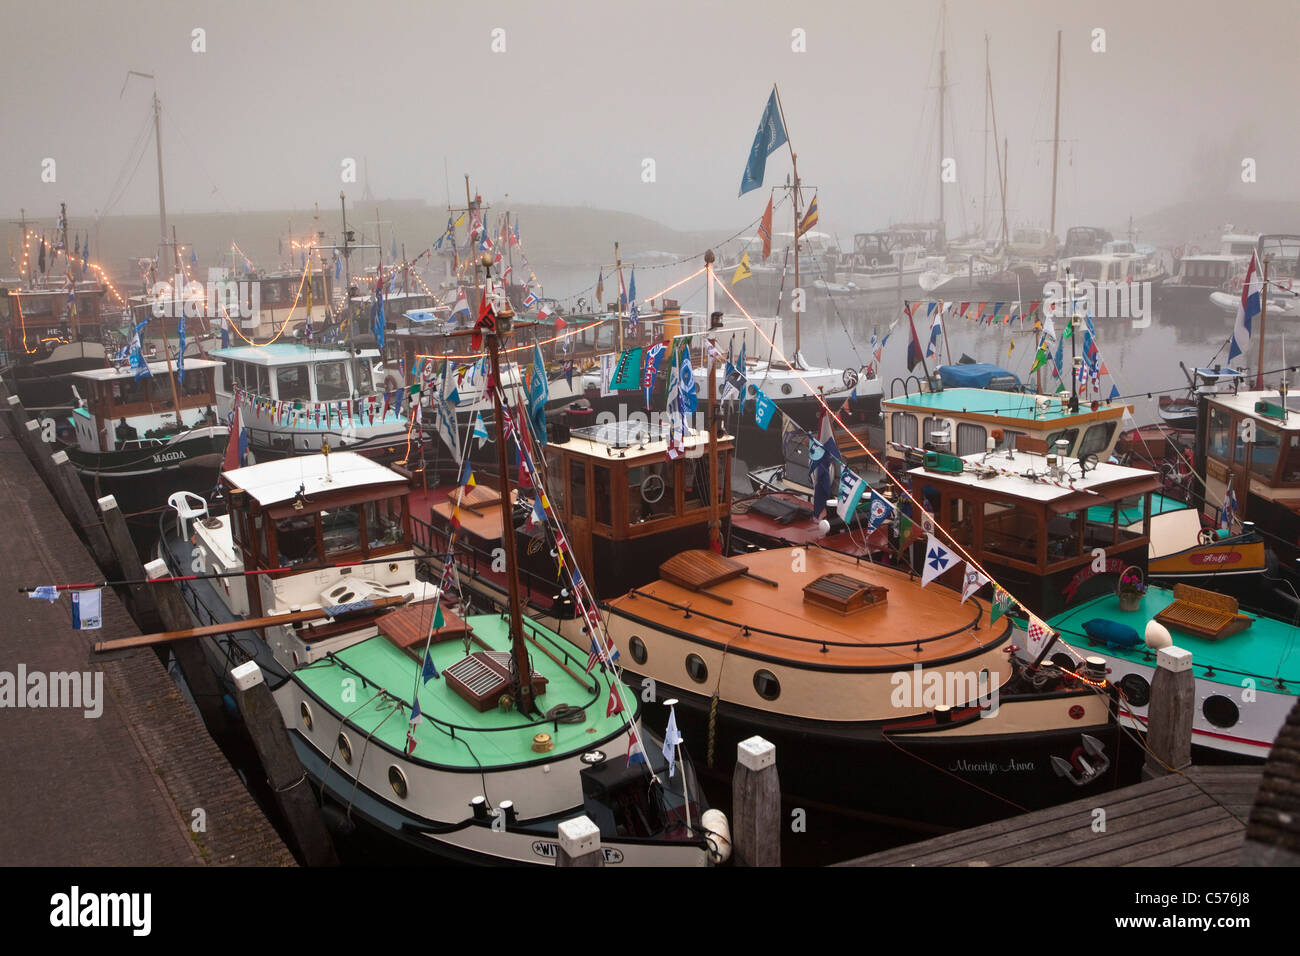 The Netherlands, Vollenhoven, Gathering of former towboats in harbour. Morning mist. - Stock Image